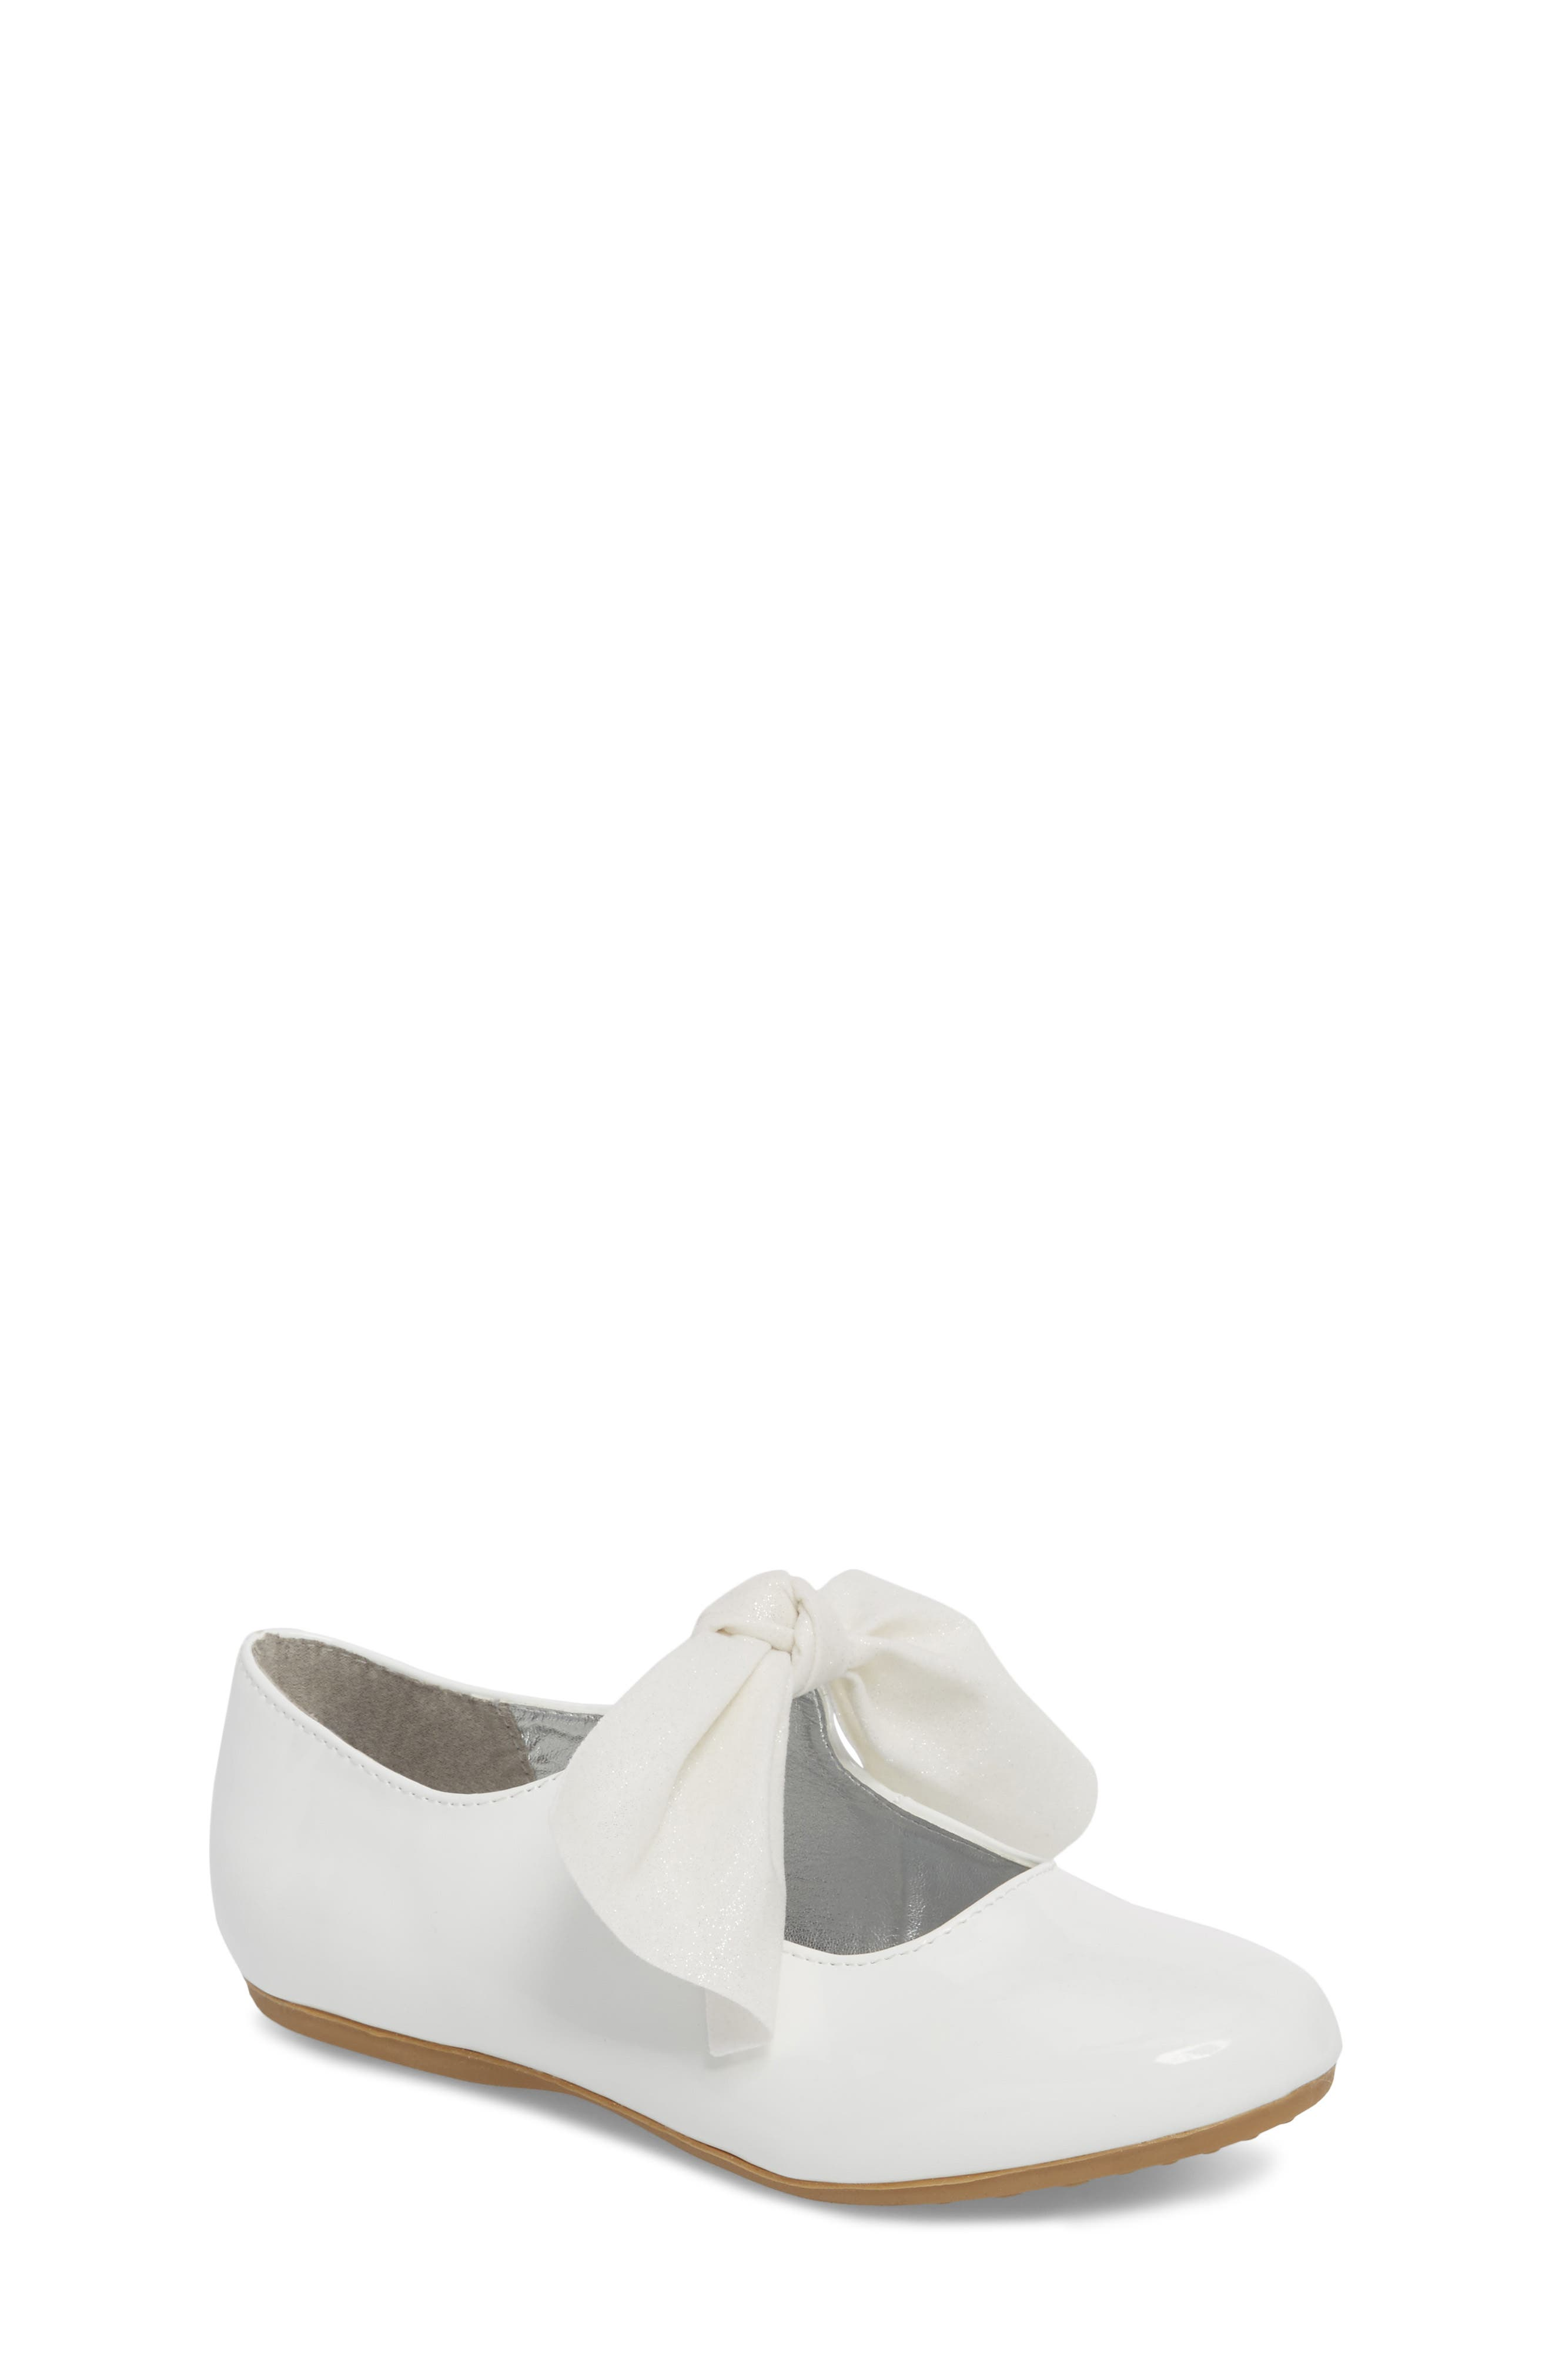 KENNETH COLE NEW YORK, Reaction Kenneth Cole Rose Bow Mary Jane Flat, Main thumbnail 1, color, WHITE PATENT